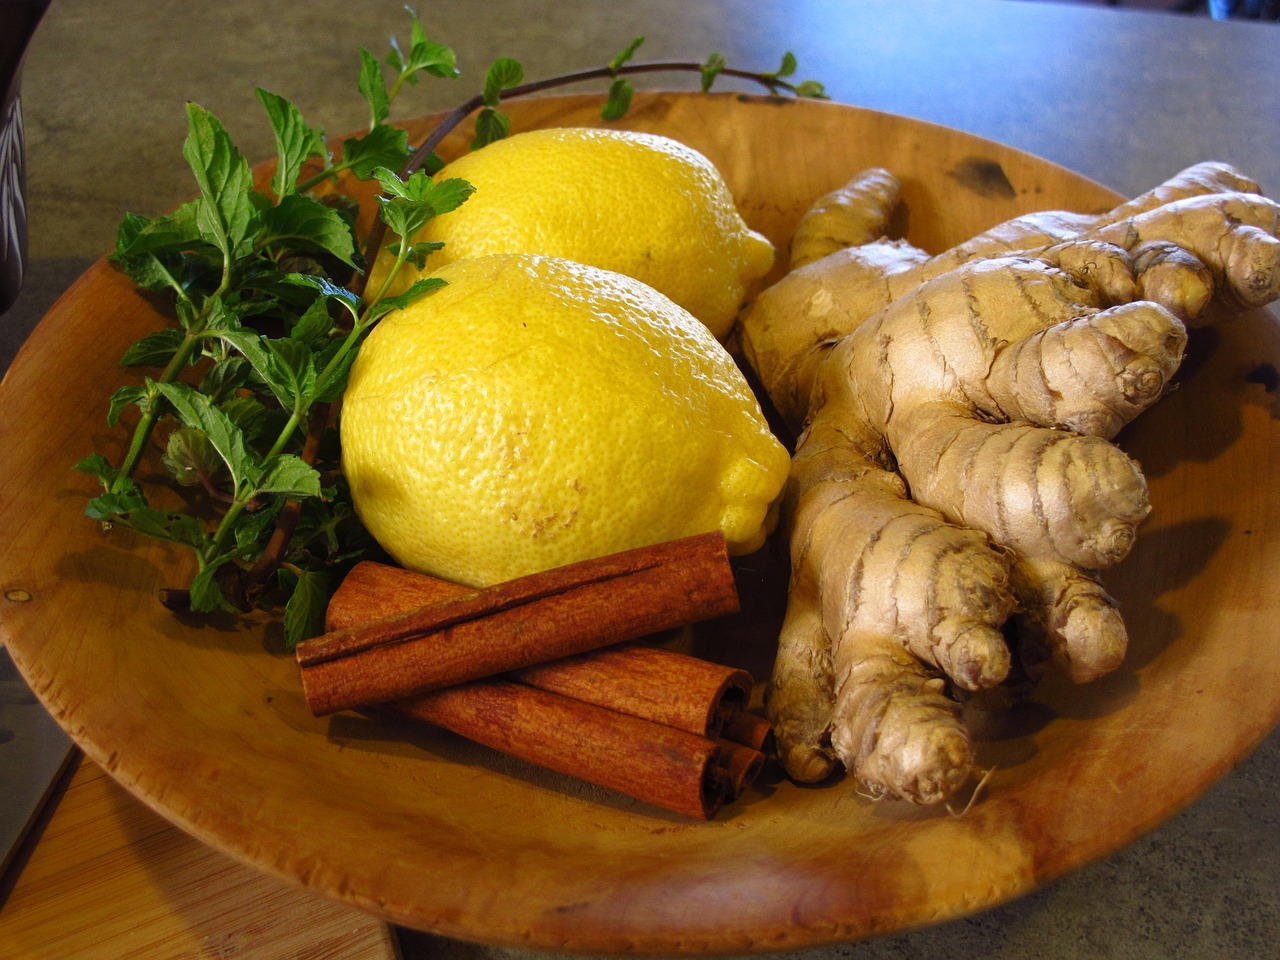 Heal Nausea and 8 Other Ginger Tea Benefits - Cup & Leaf